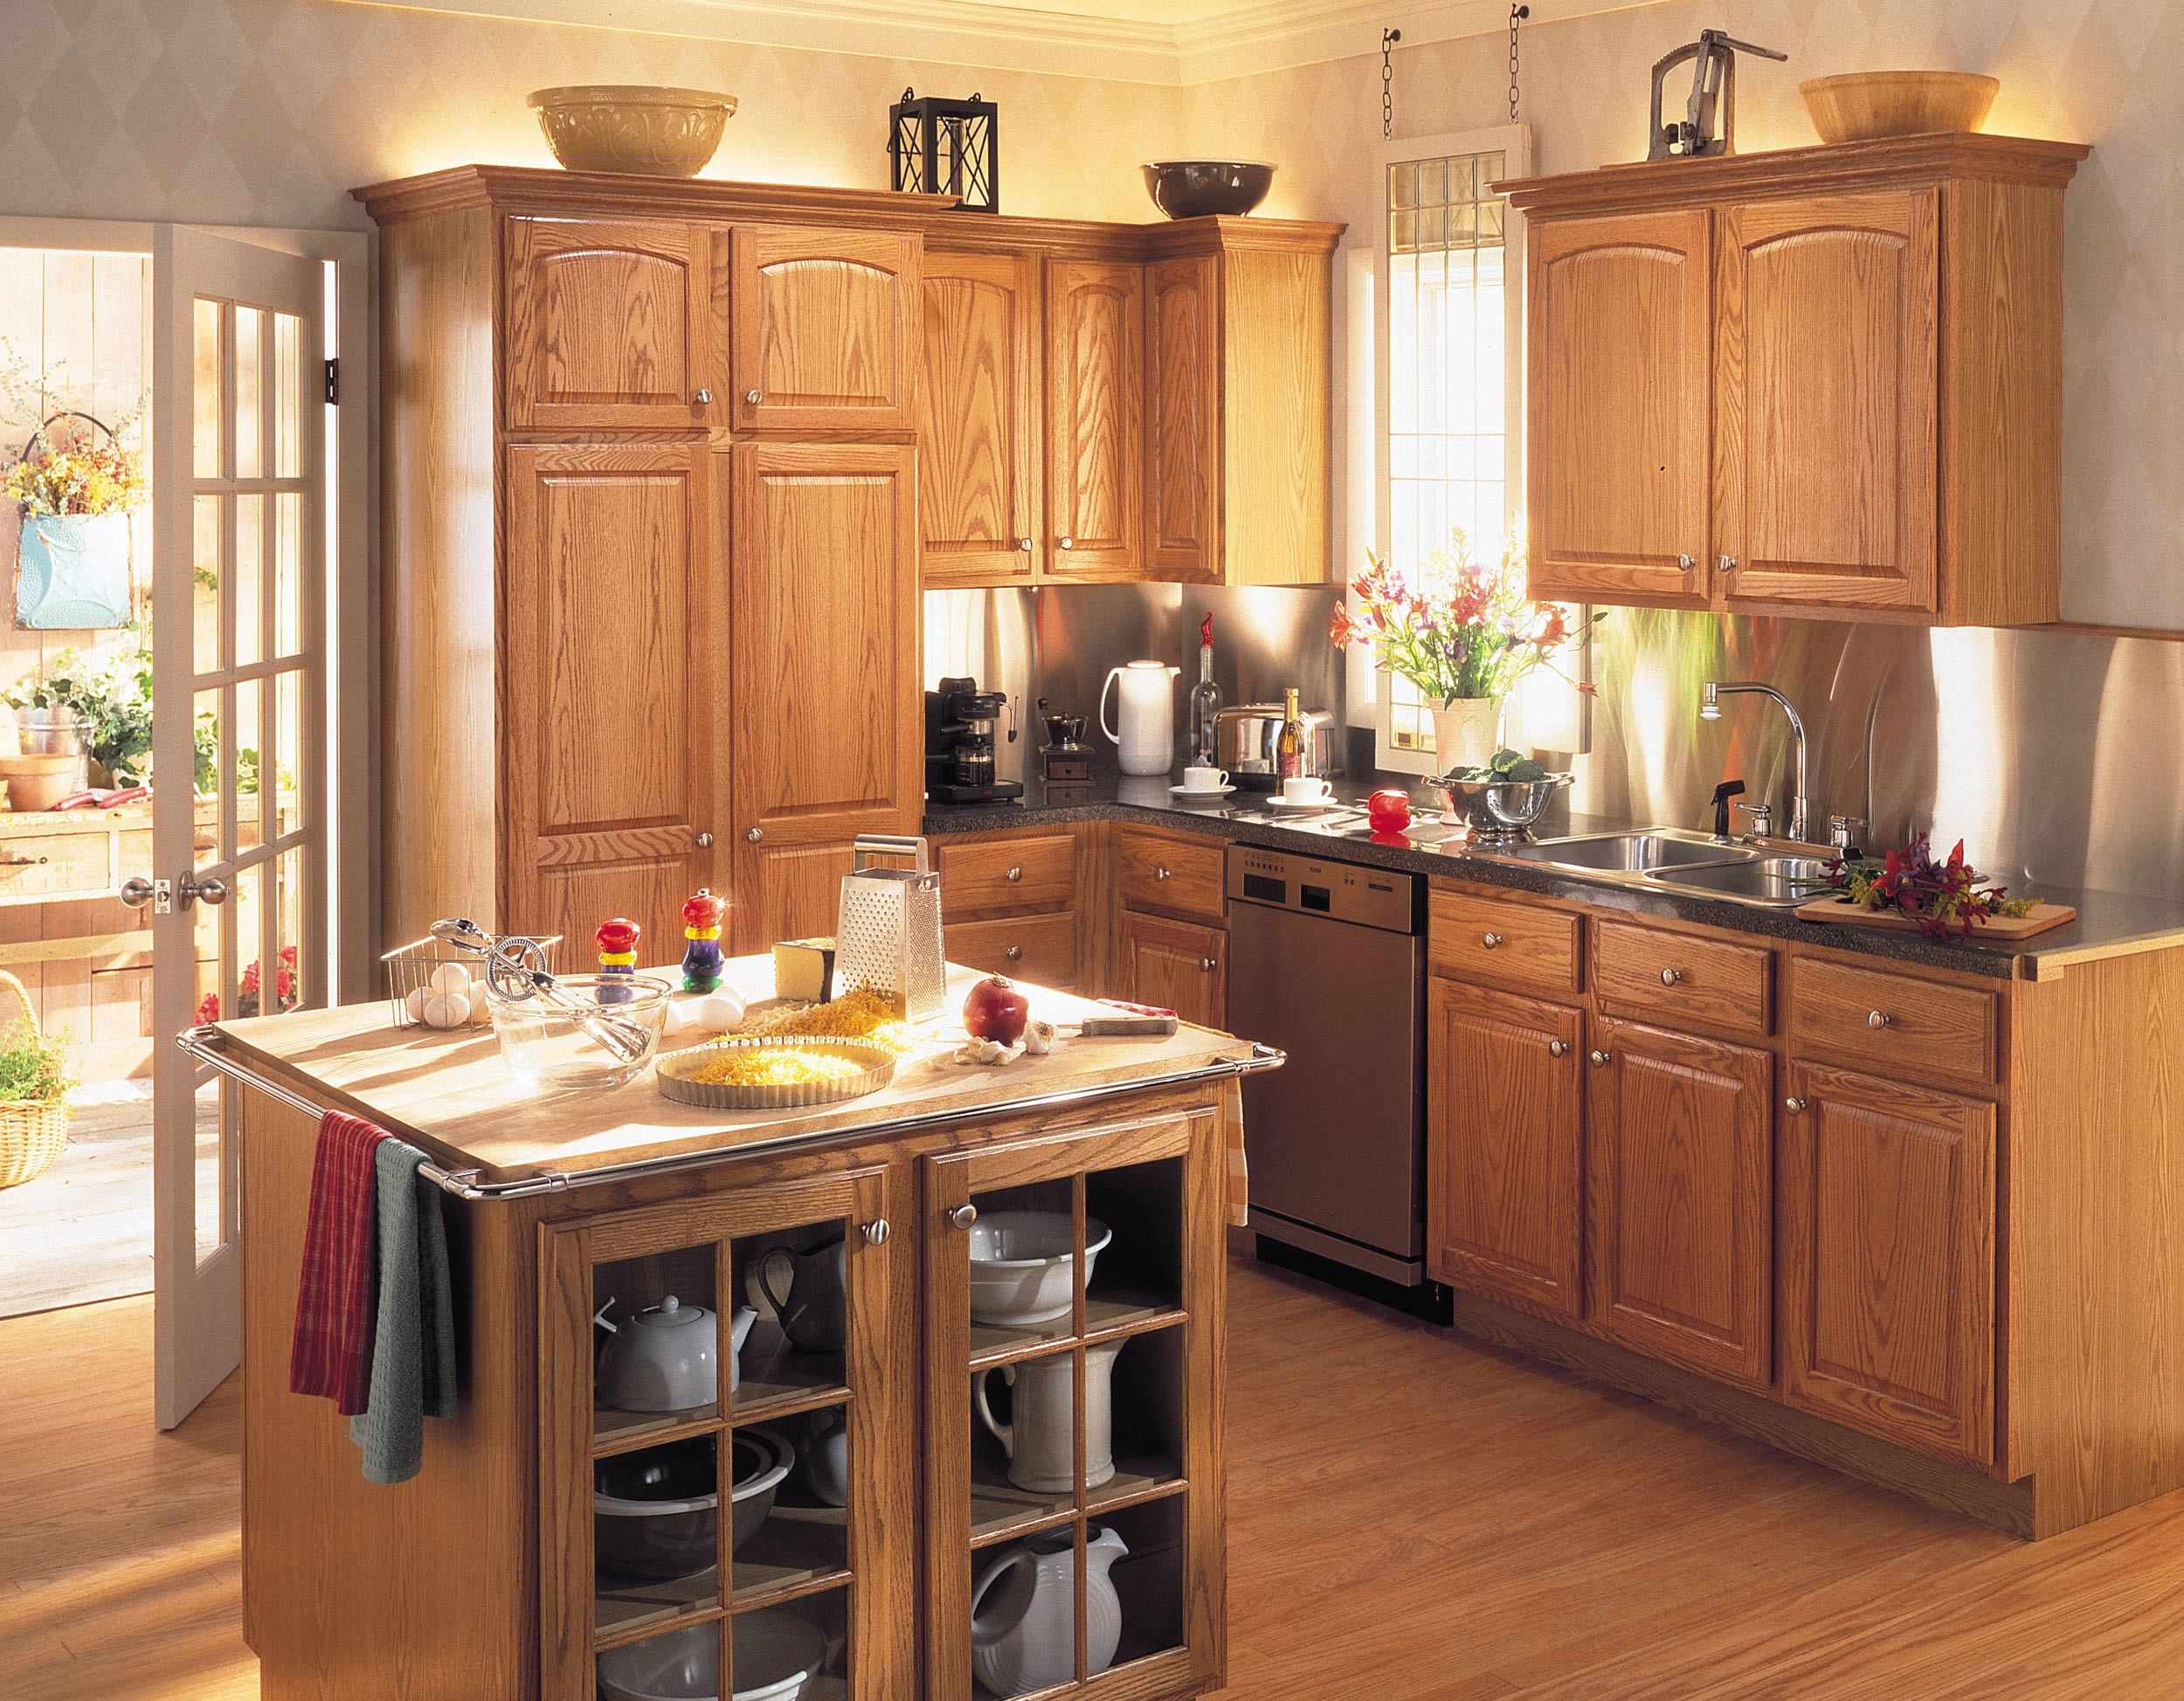 One of many design ideas for your kitchen from Merillat ...